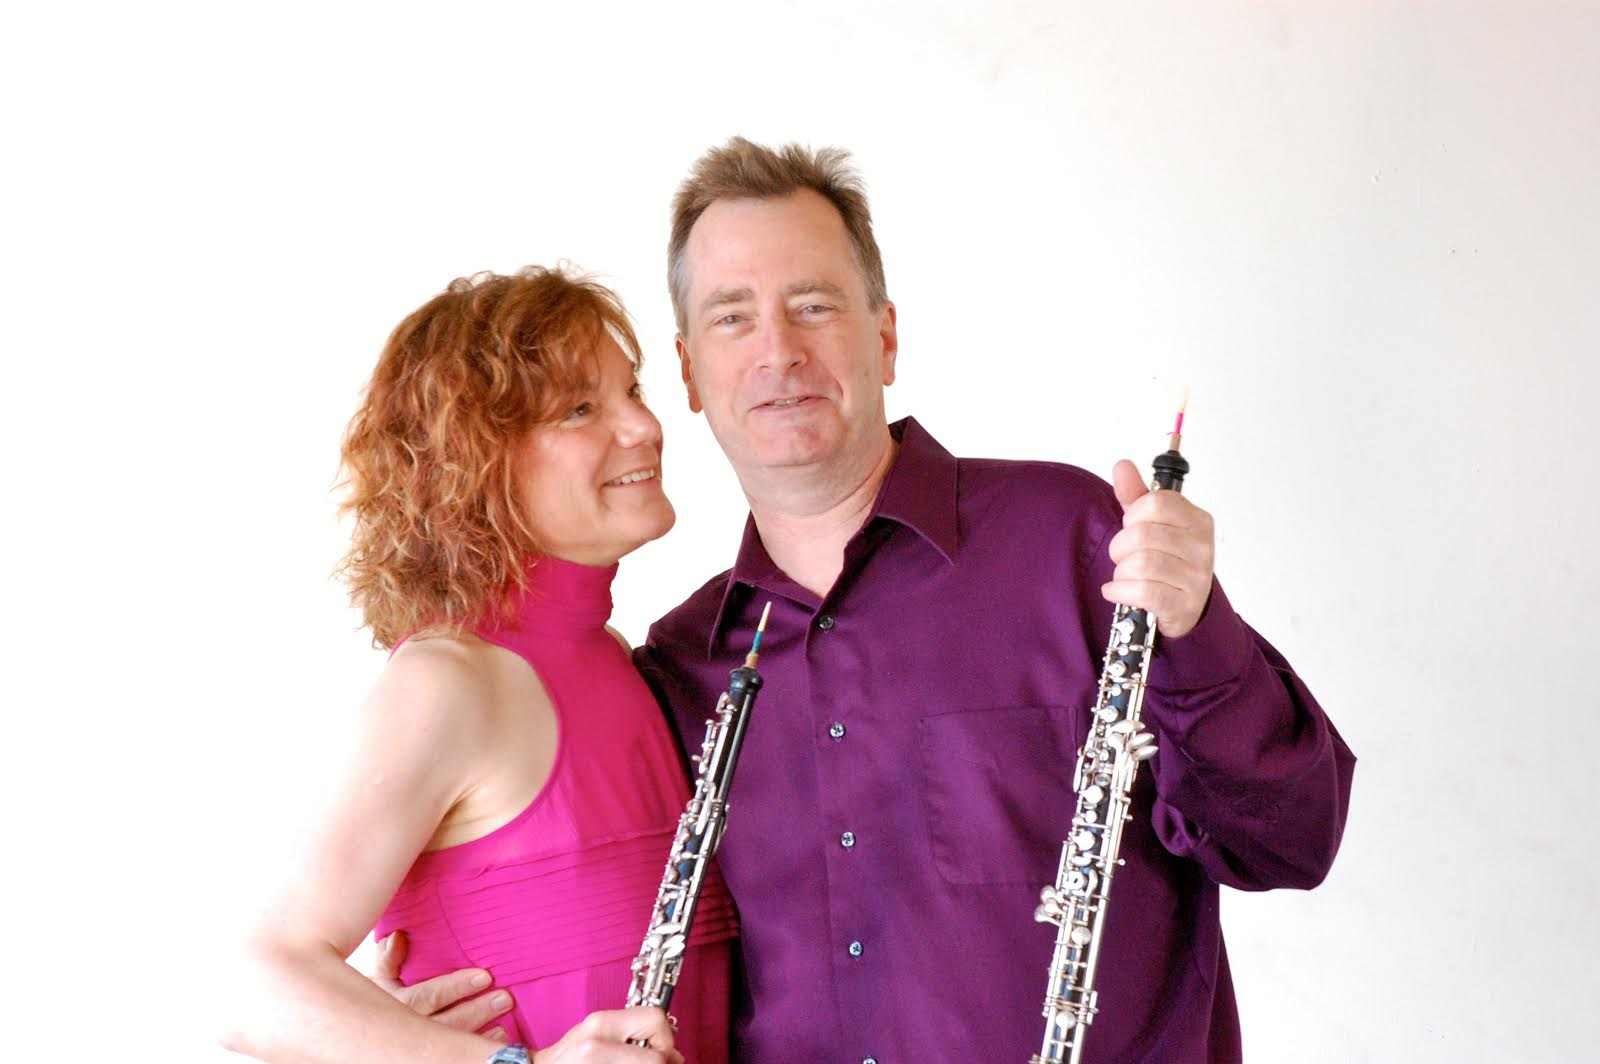 Tom Nugent (oboe) with fellow Left Coast musician and wife, Andrea Plesnarski